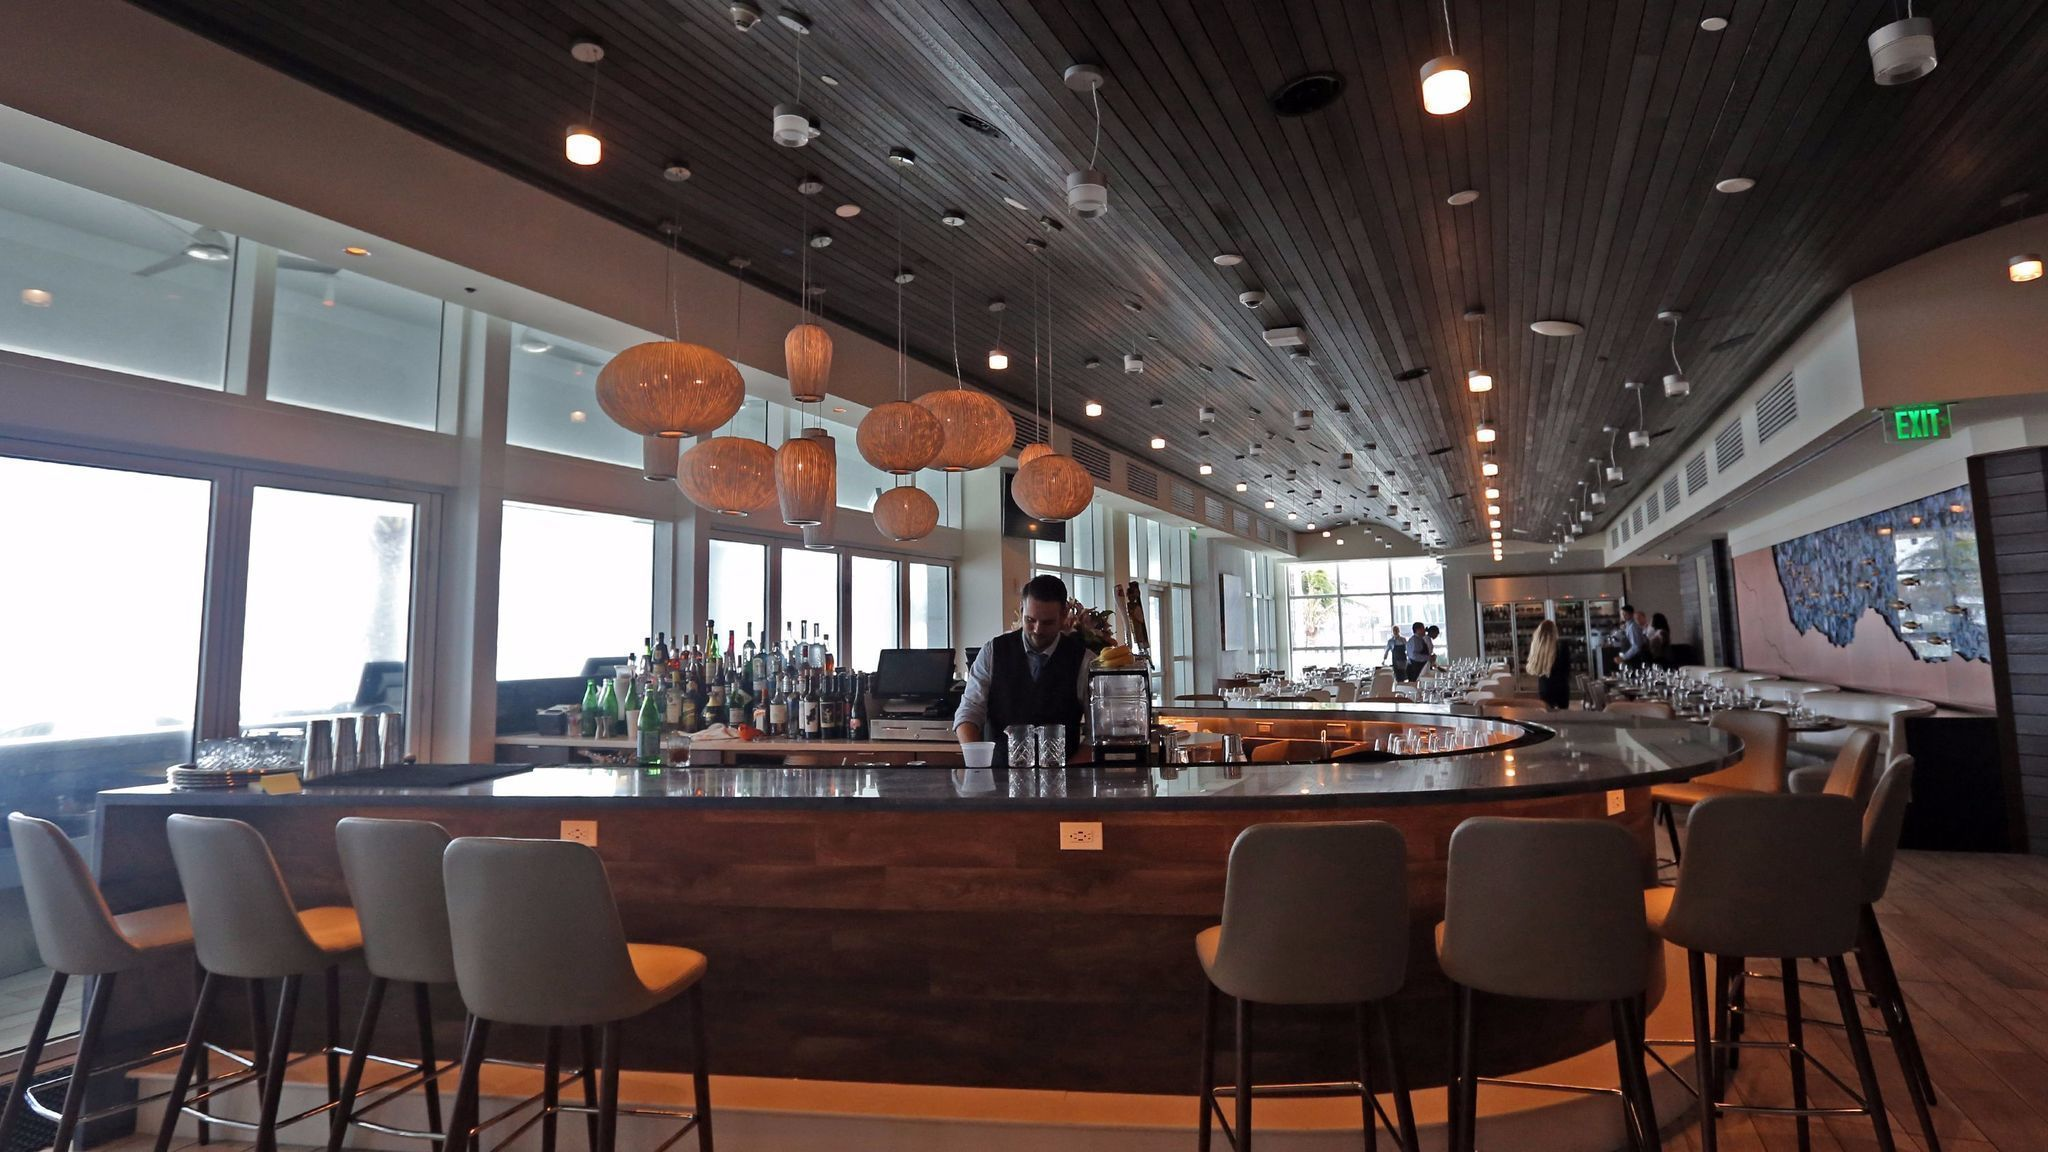 Conrad Fort Lauderdale Previews Rooms Restaurants Ahead Of Oct 10 Opening Sun Sentinel